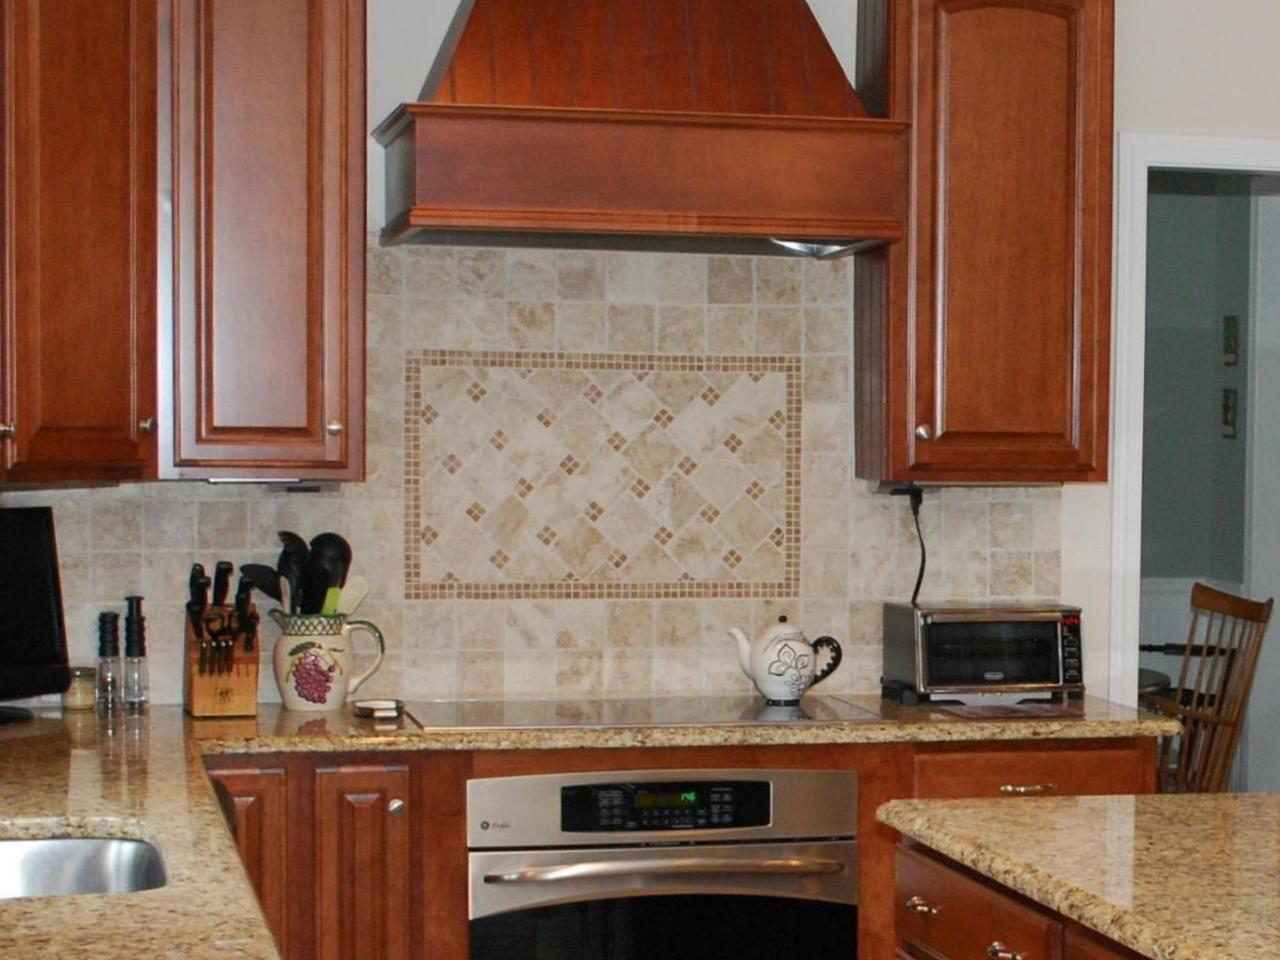 Kitchen backsplash design ideas hgtv for Kitchen tiles design photos